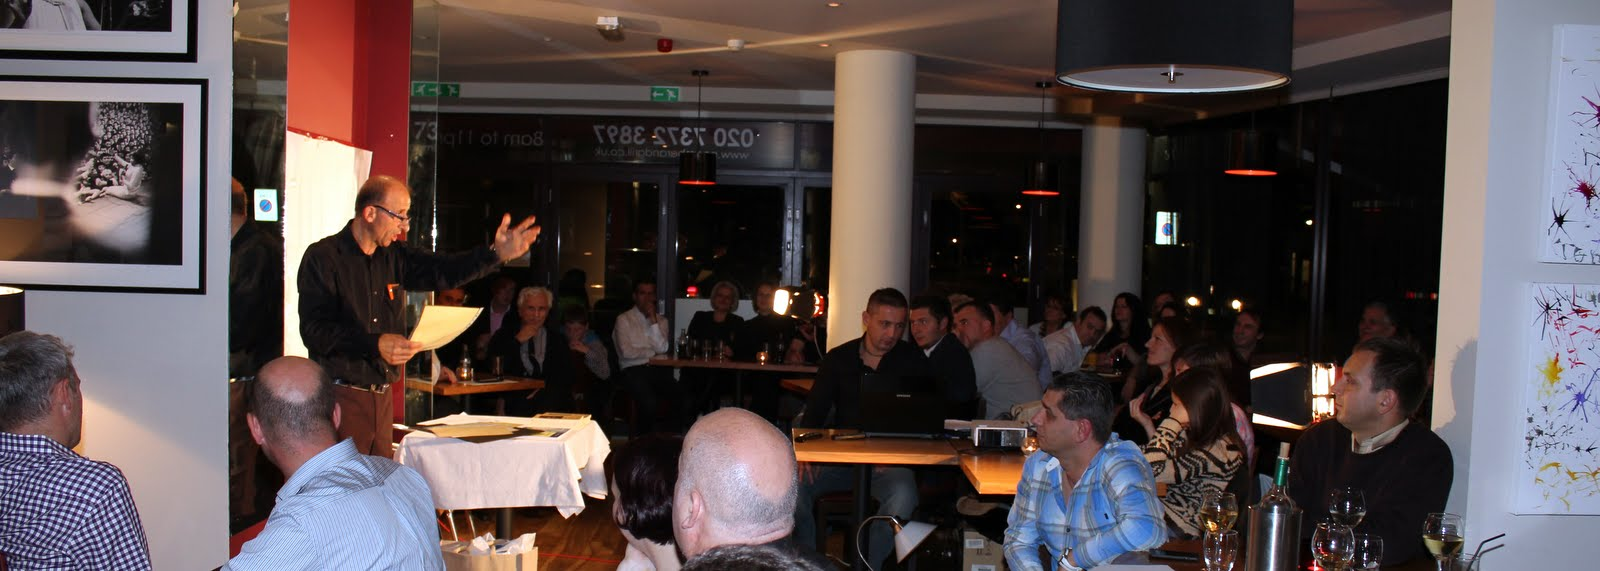 "An event organised by British Albanian association ""Peja"" at Poem Bar and Grill, St John's Wood, London, 30th October 2011."